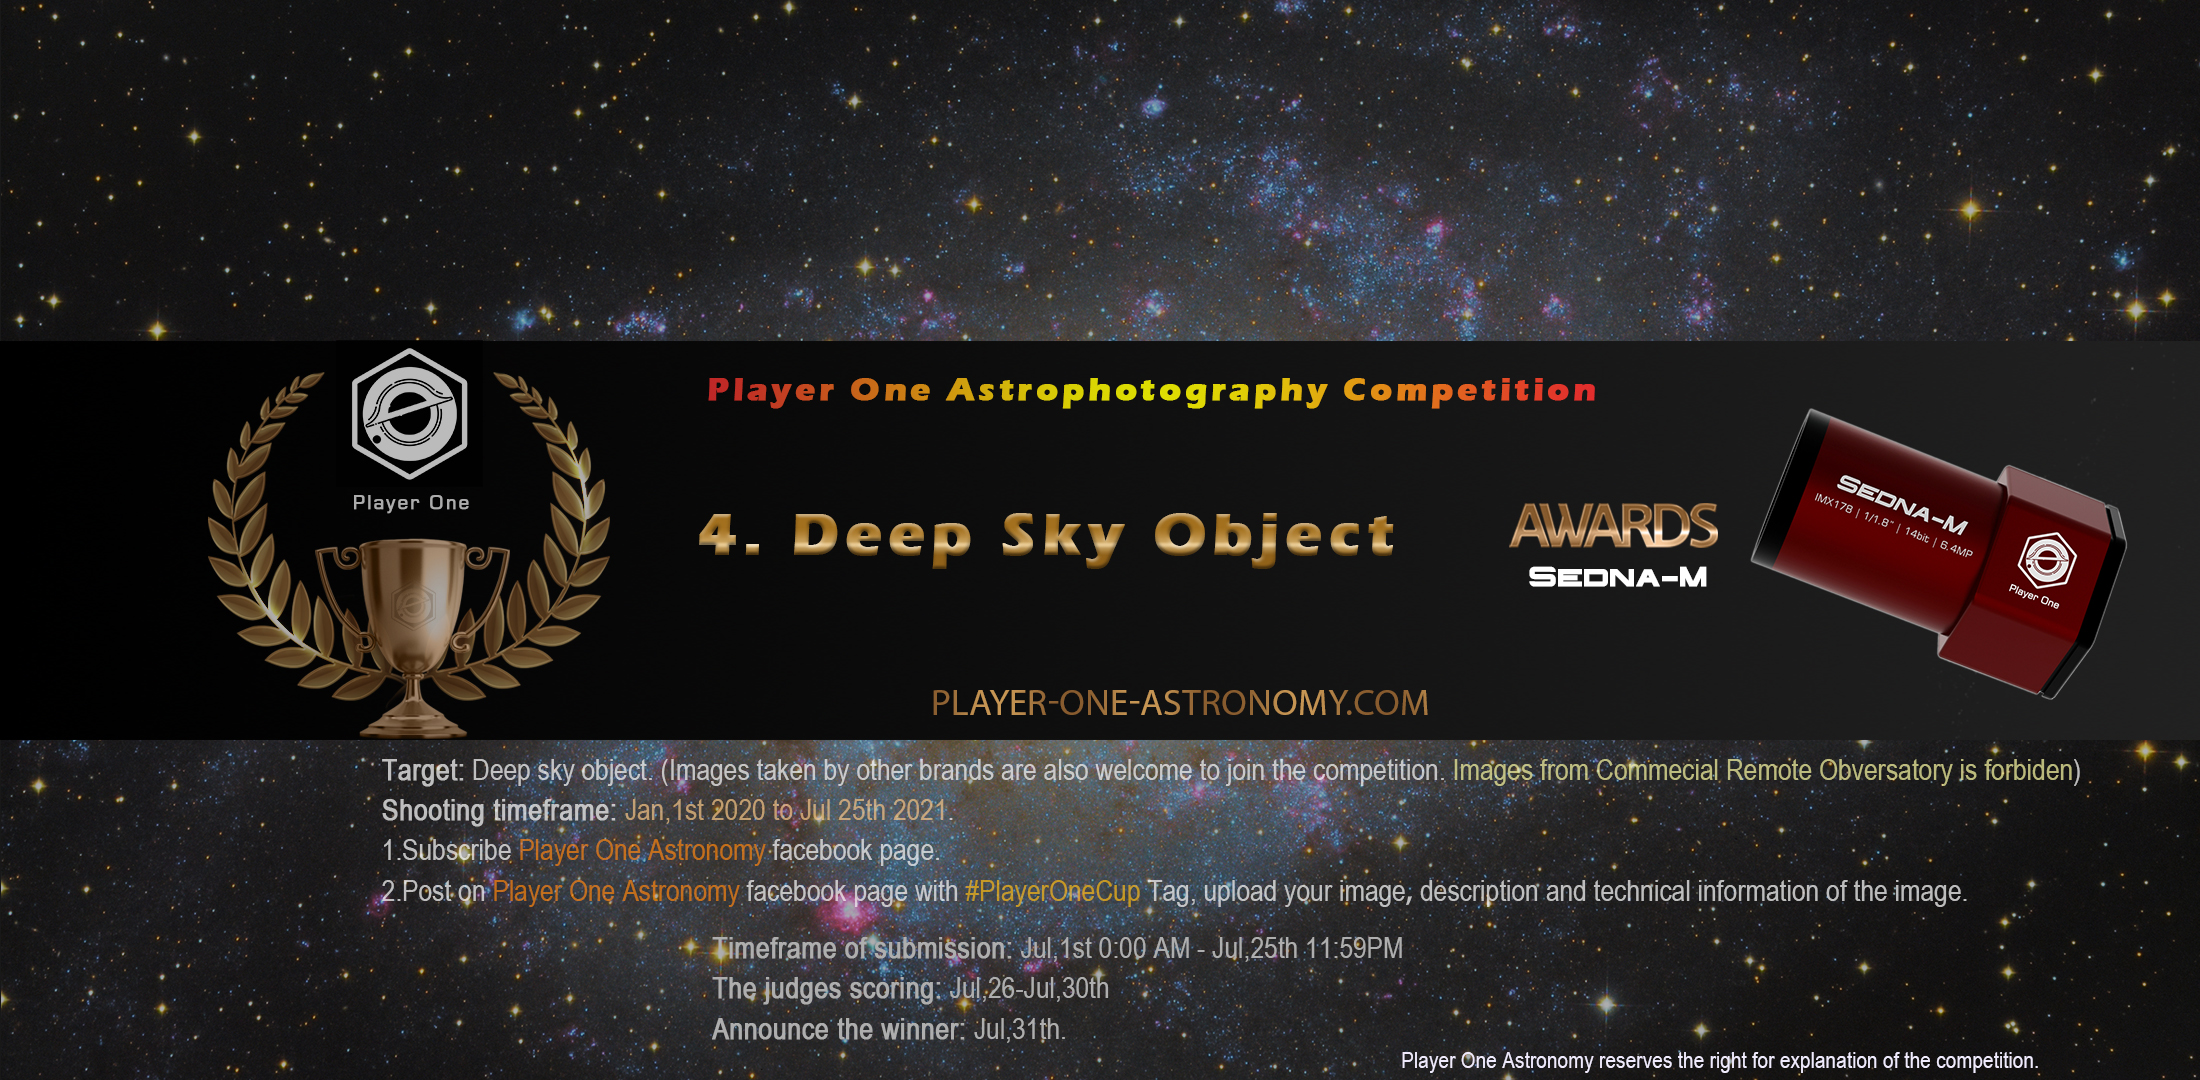 Player One Astrophotography Competition Round 4: Deep Sky Object